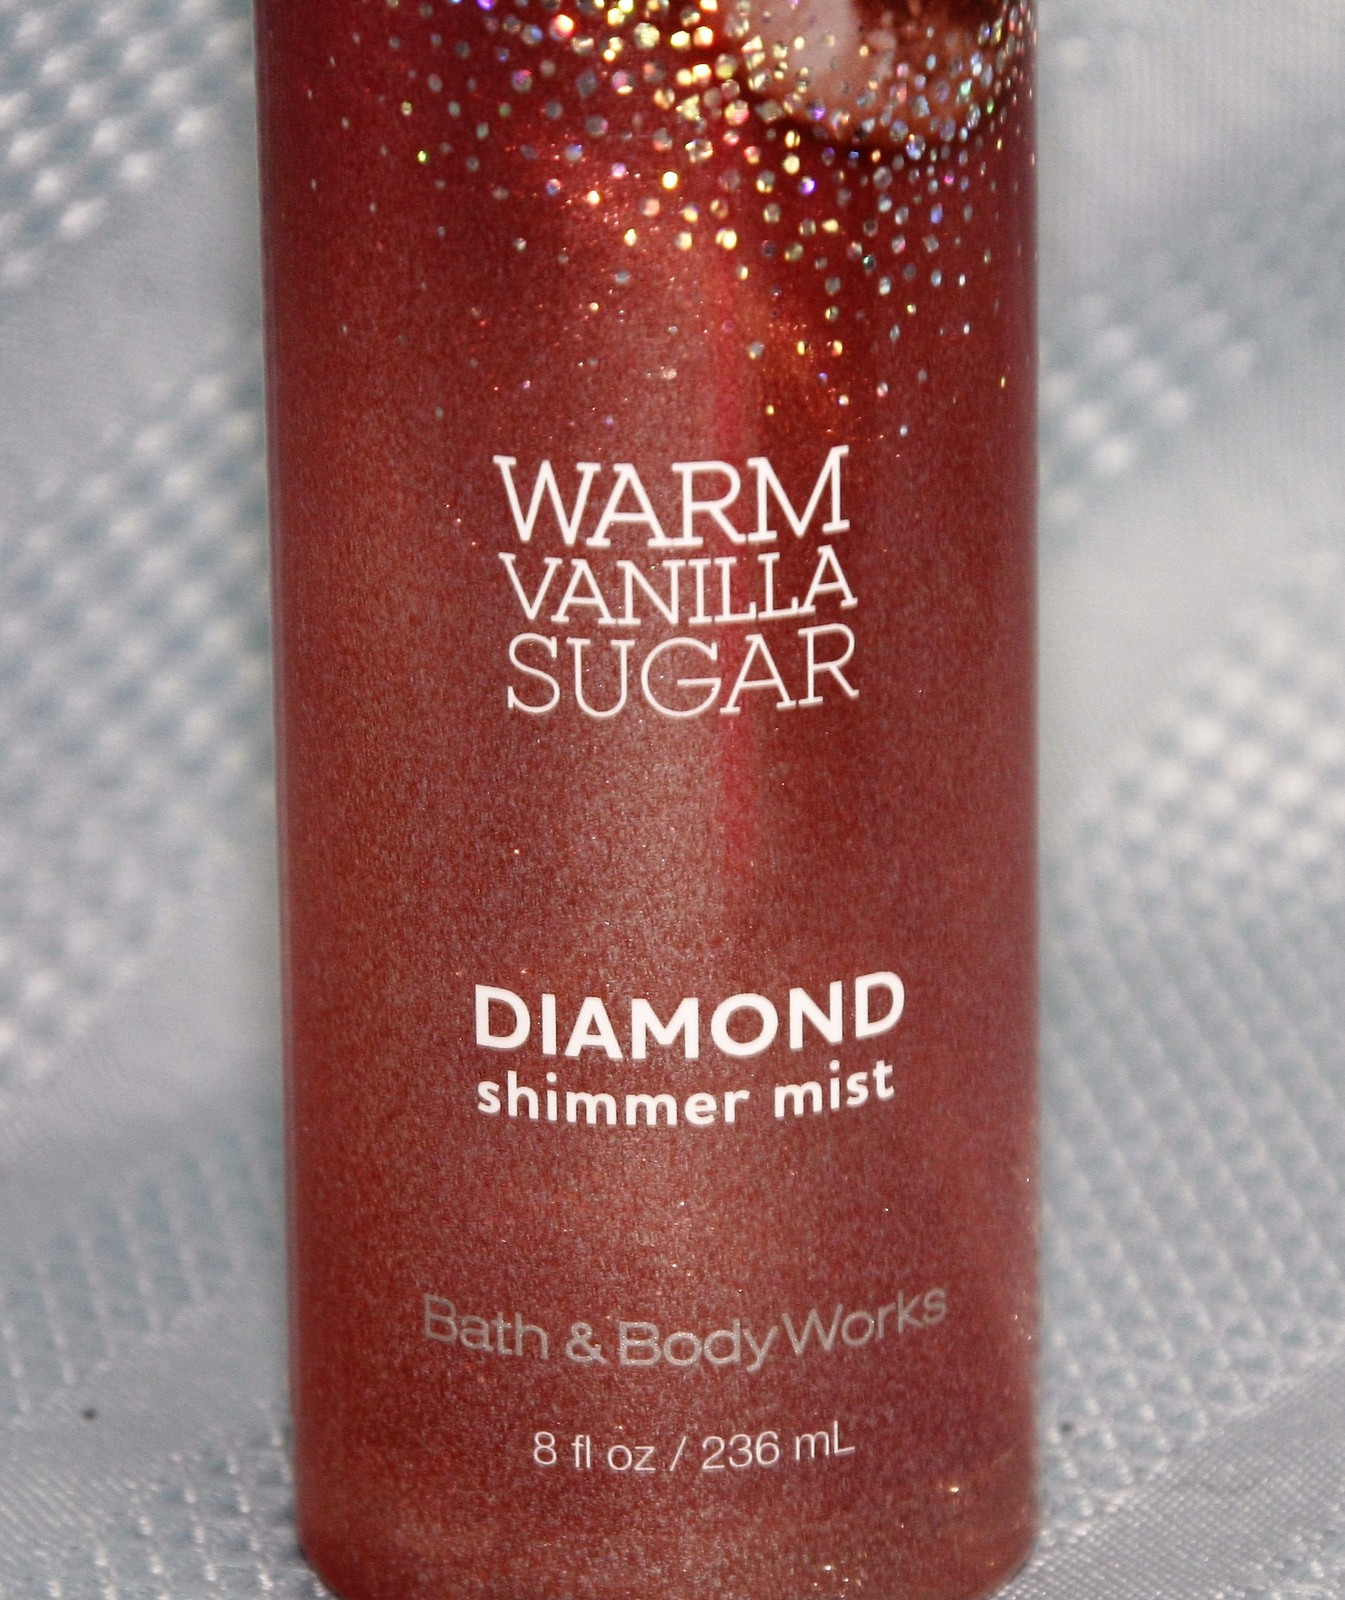 Bath & Body Works Warm Vinalla Sugar Diamond Shimmer Mist Fragrance Spray 8 oz.